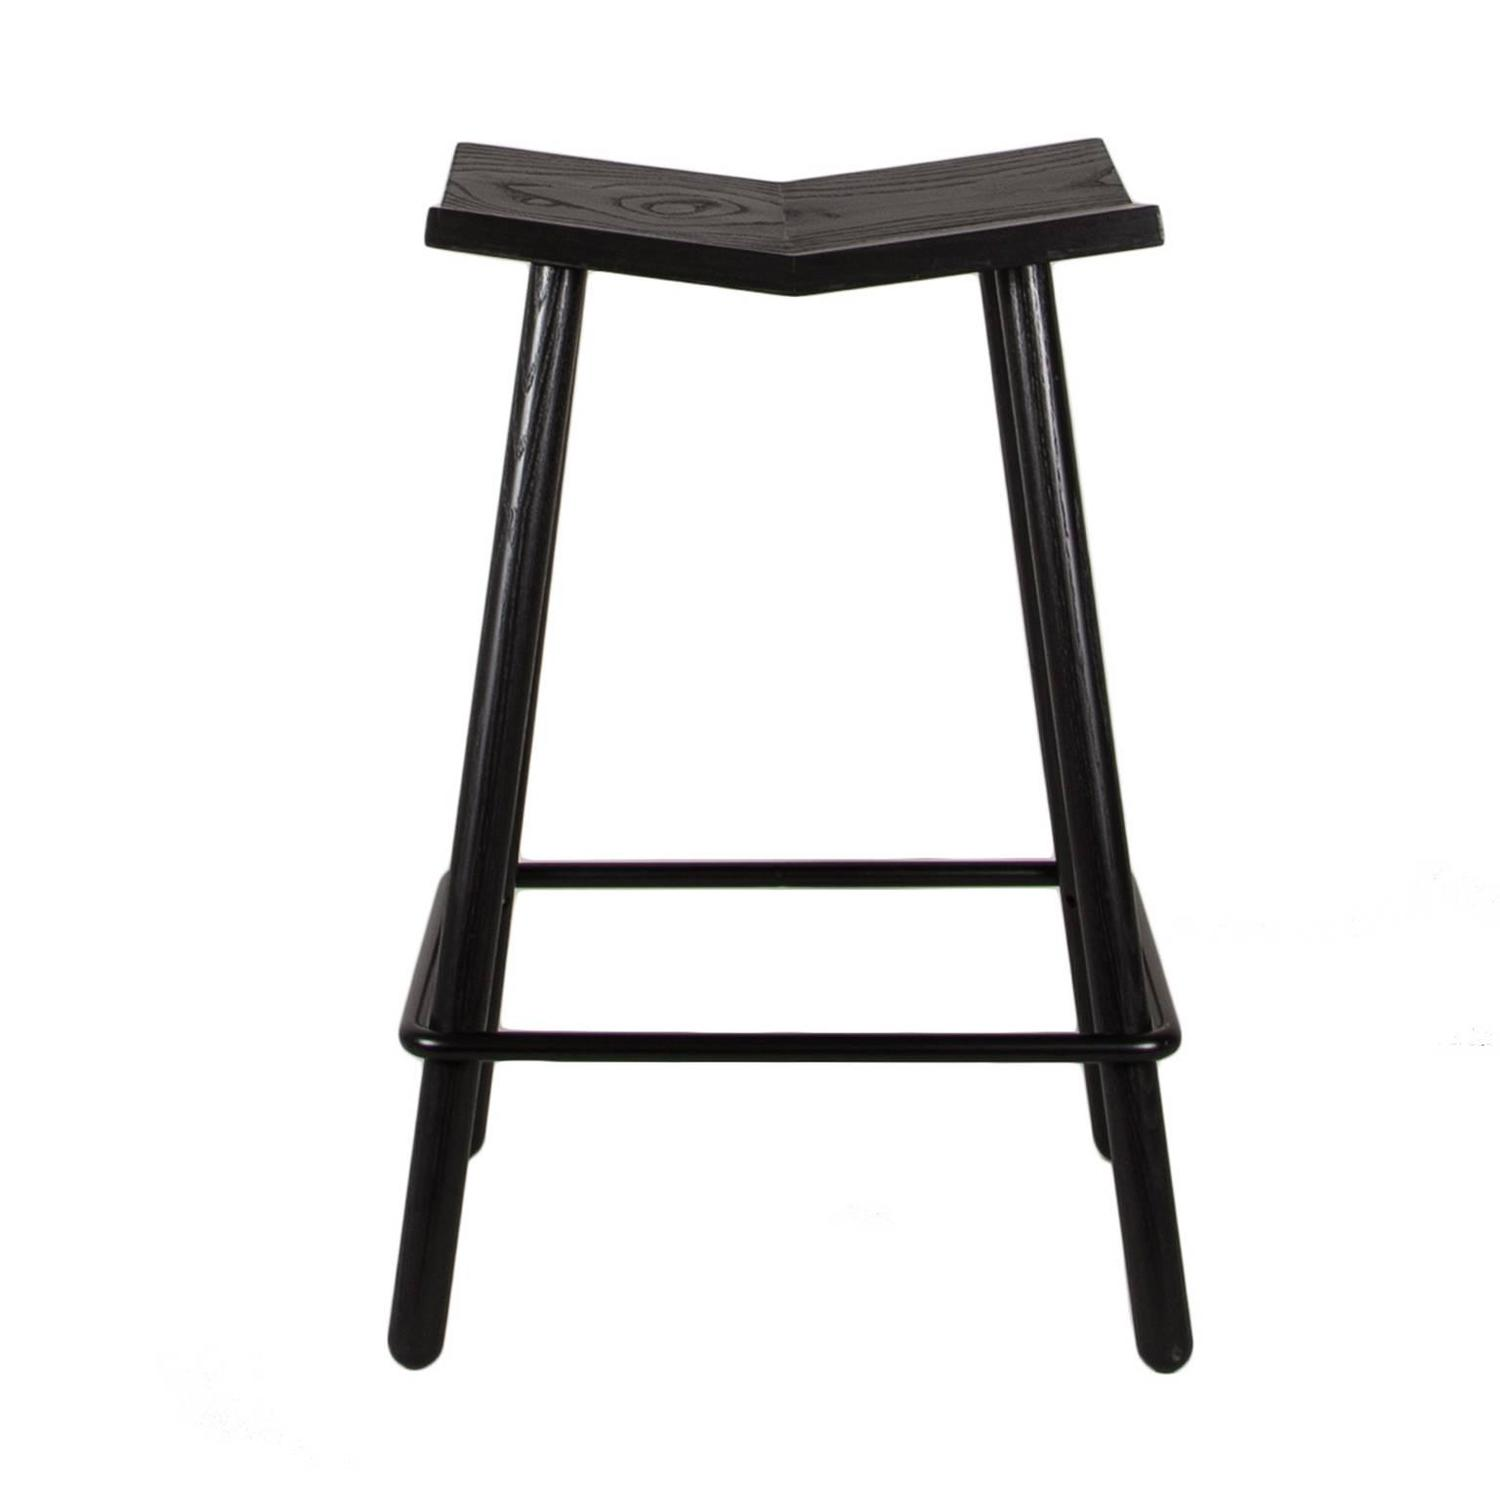 Modern Counter Height Stools Modern Black Mitre Wooden Stool Contemporary Counter